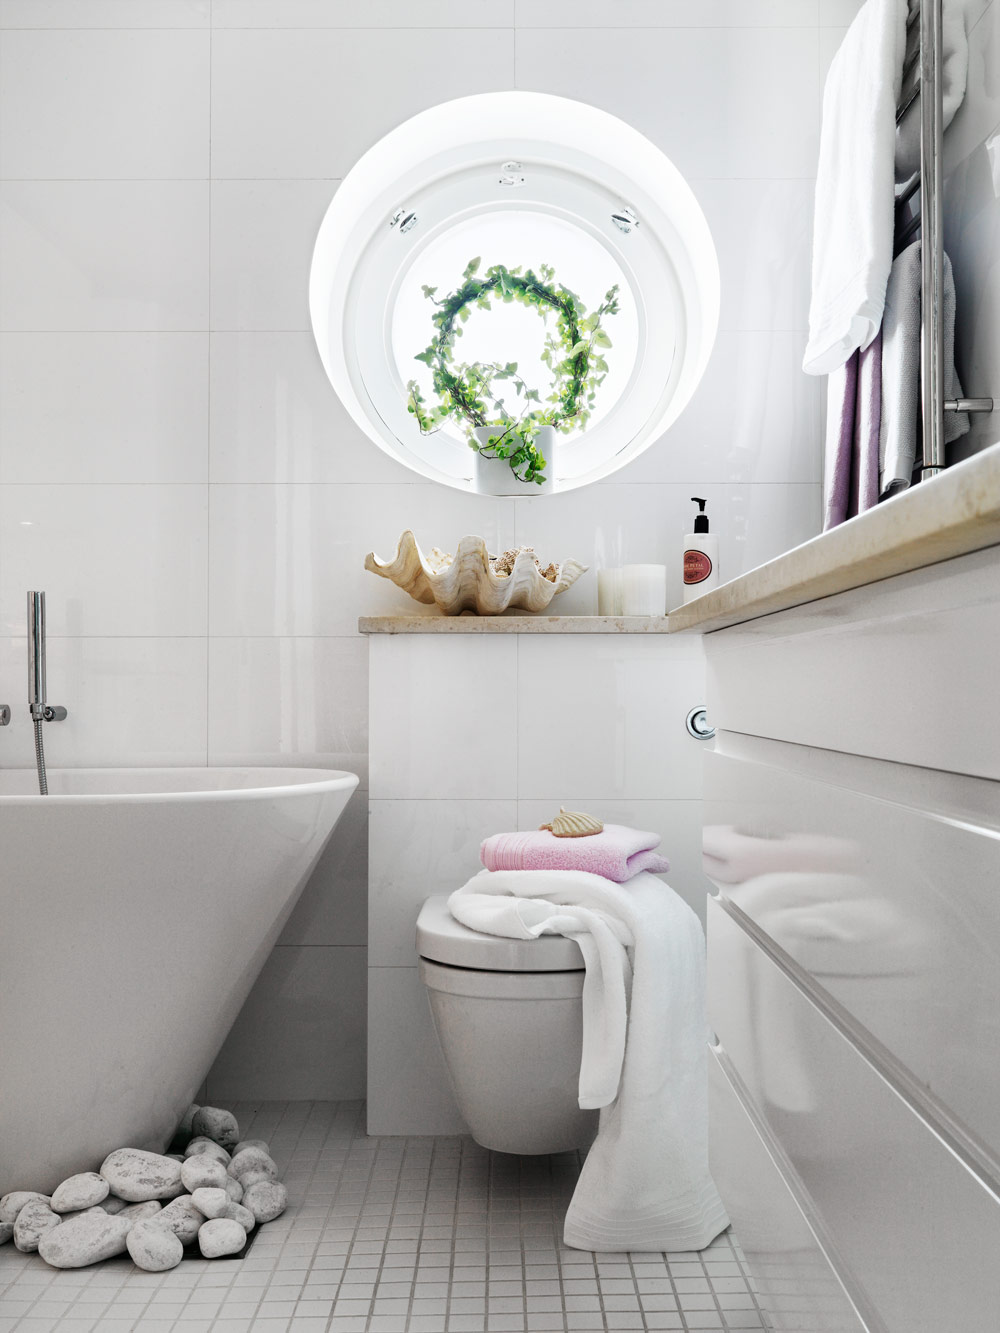 Stylish small bathroom with an unusual decor digsdigs Tiny bathroom